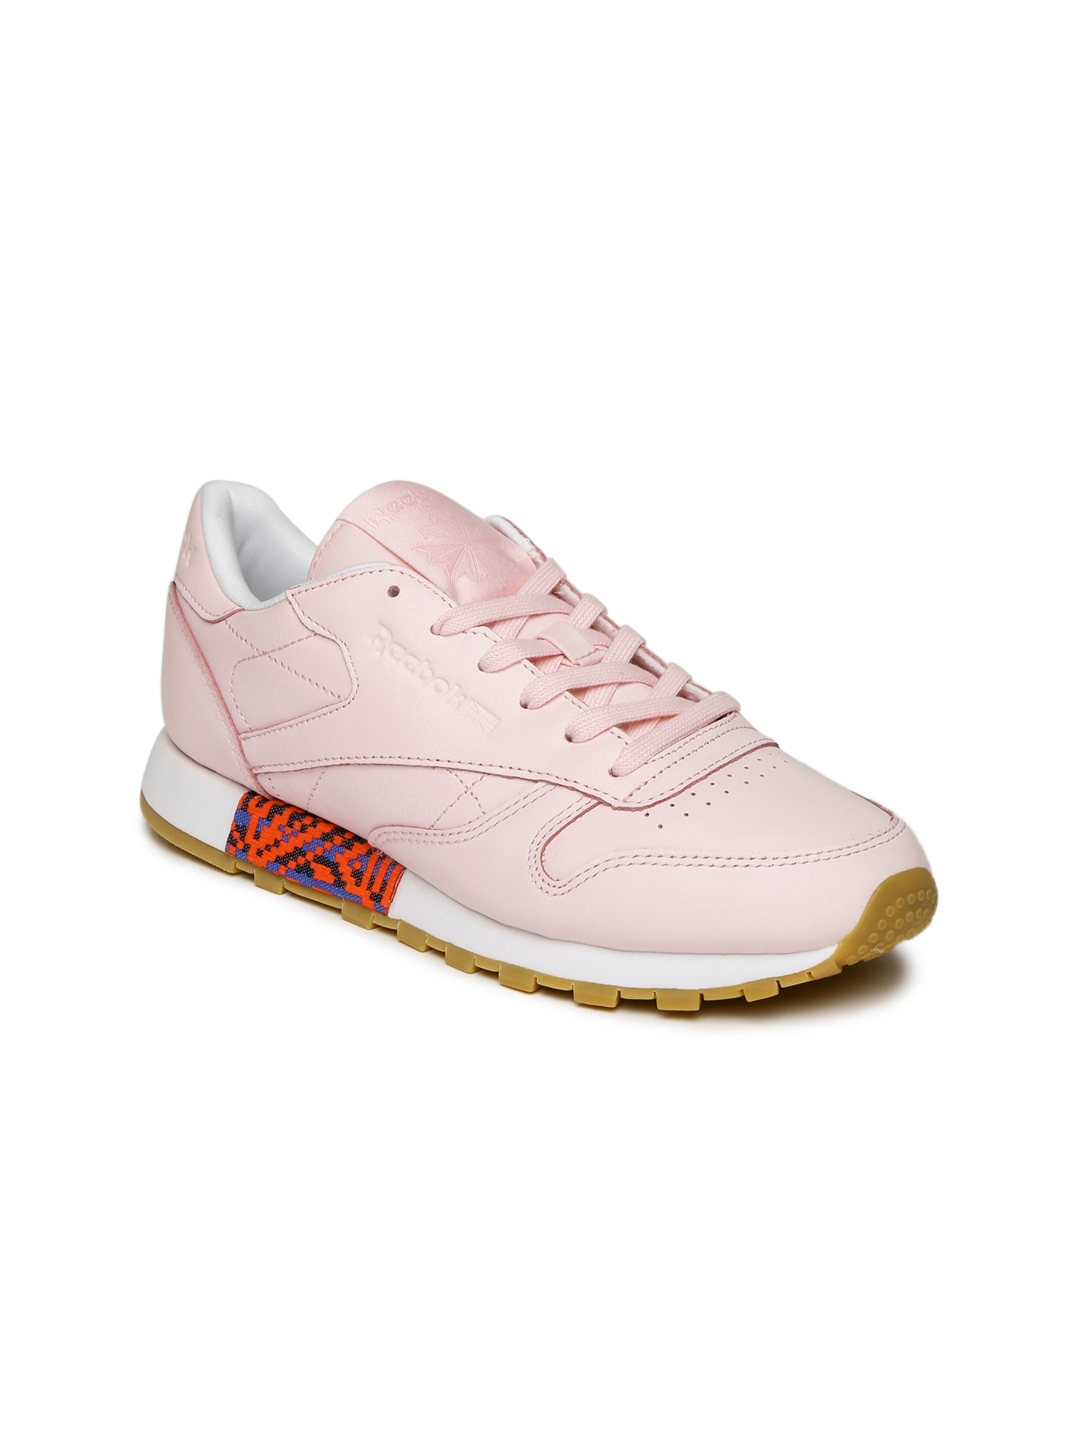 Buy Reebok Classic Women Pink OLD MEETS NEW Leather Sneakers ... 64dd70106a